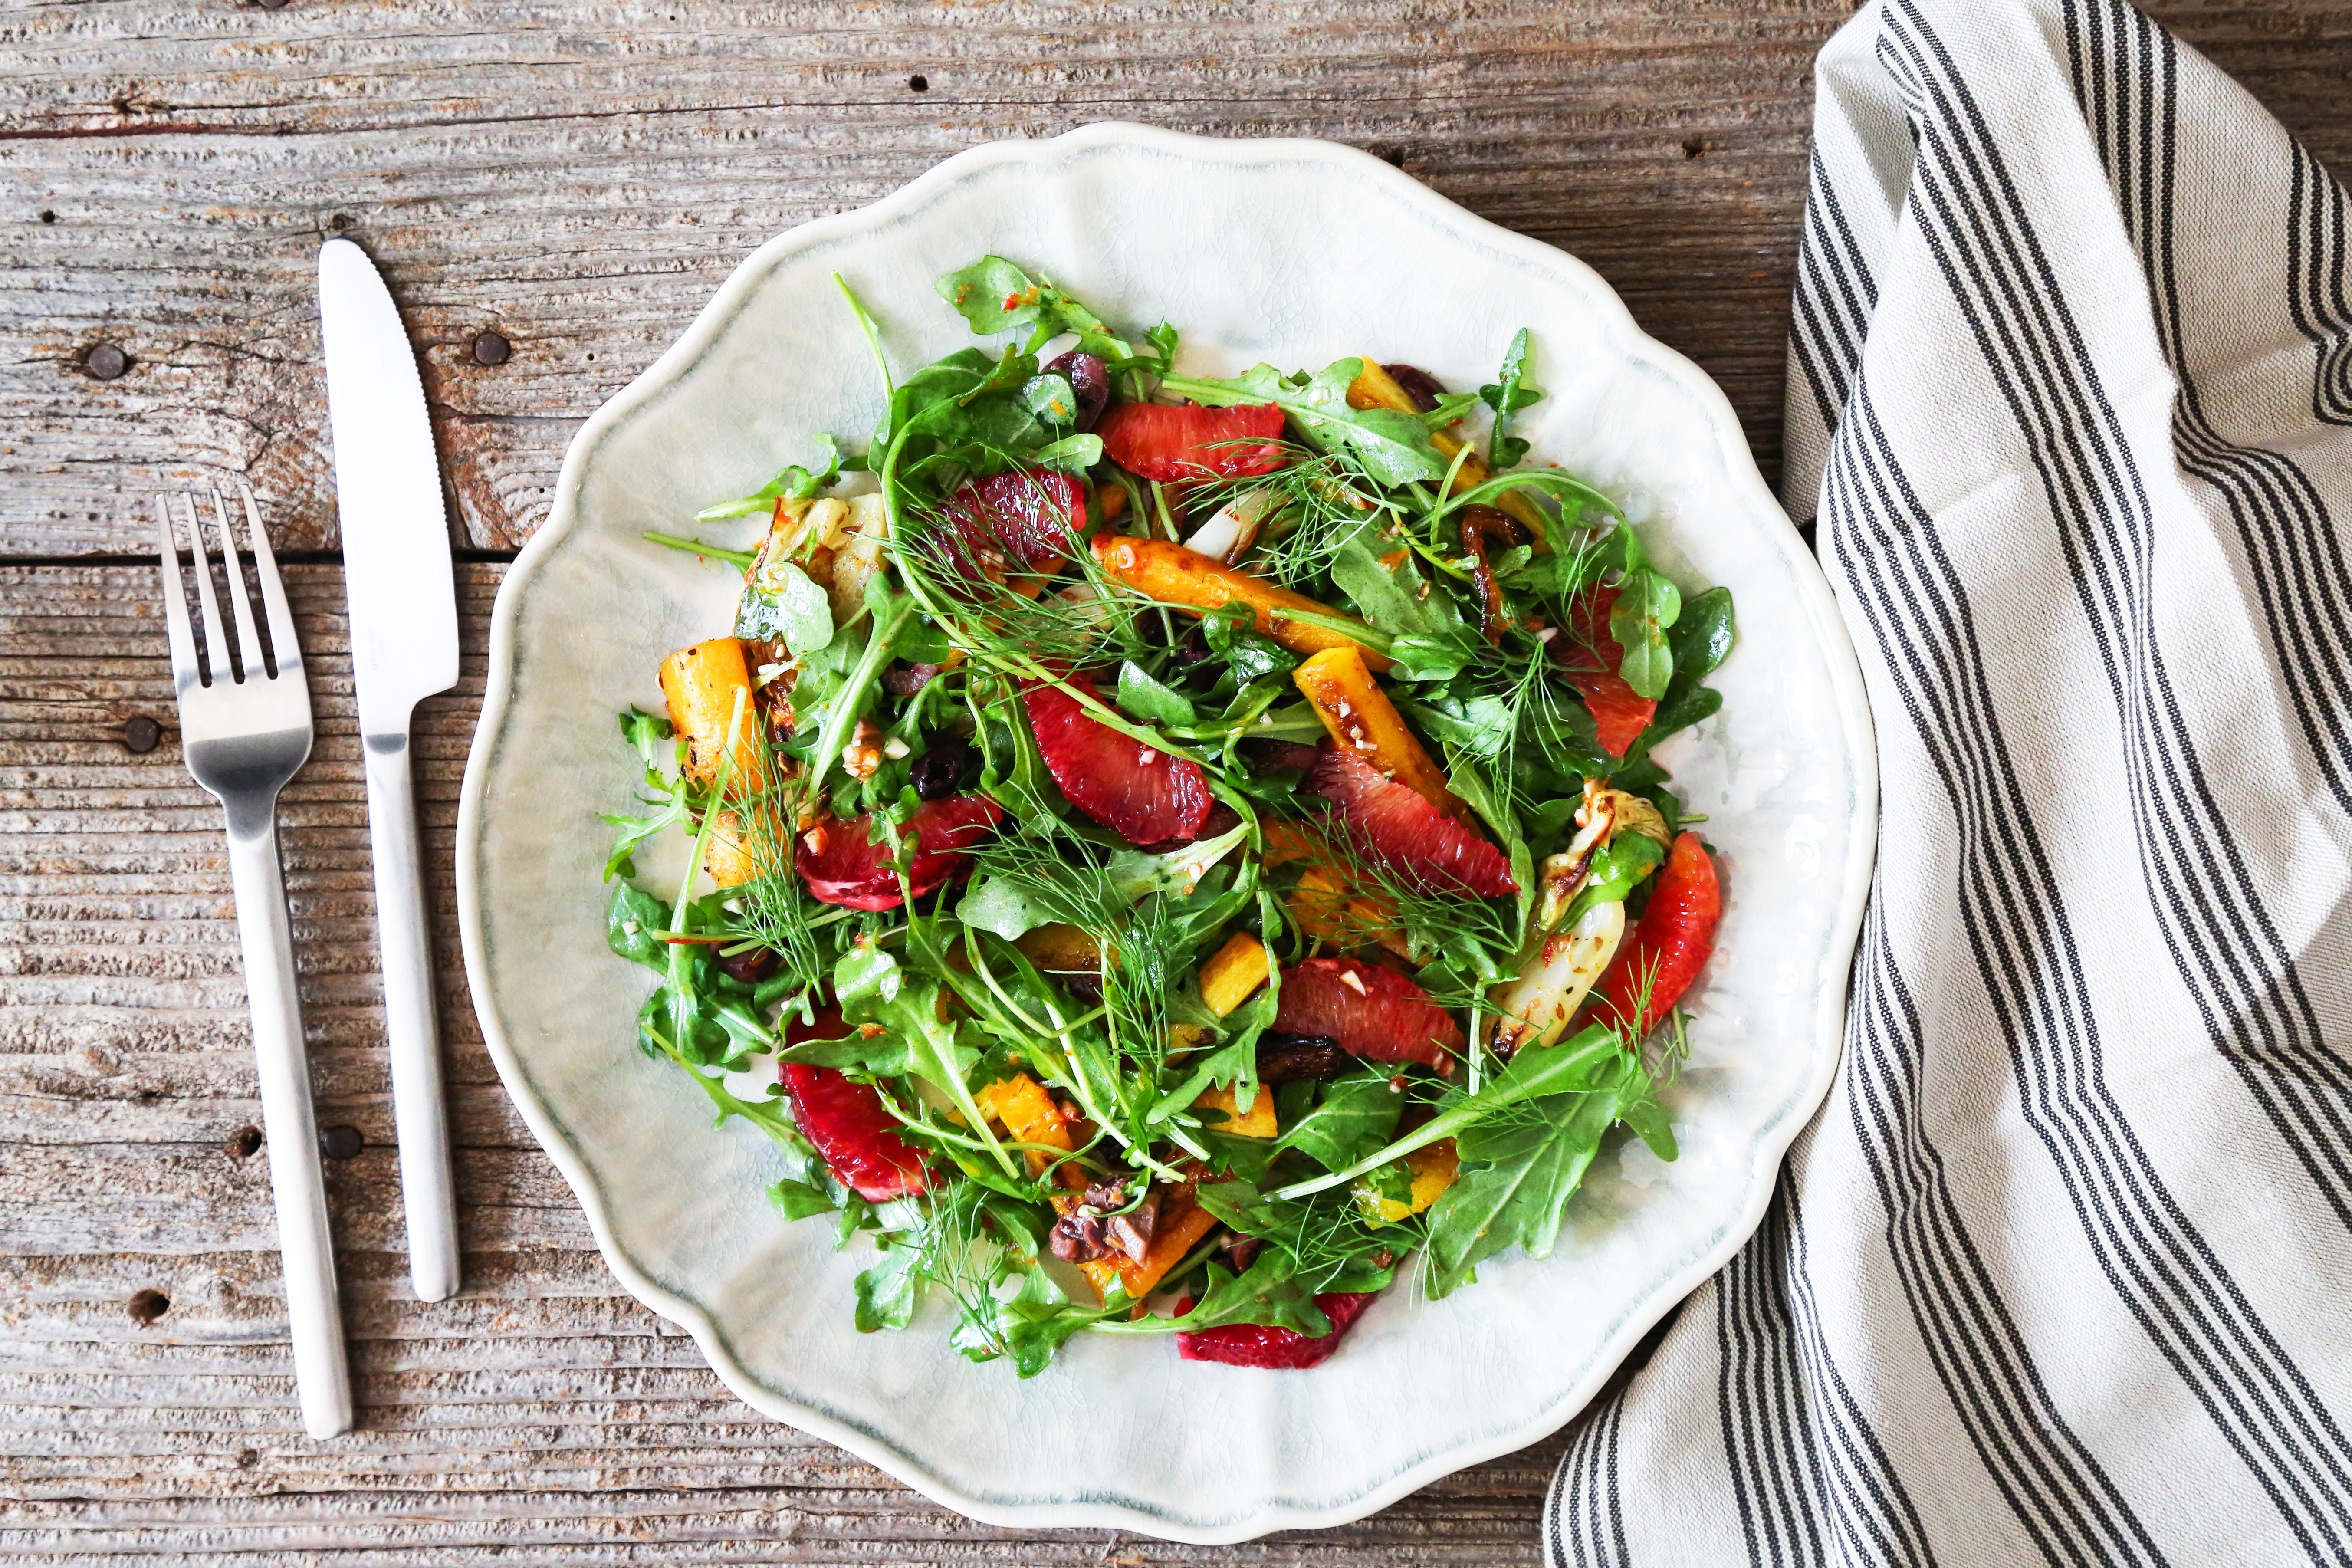 ... salad is as beautiful as it is delicious. And this salad is a stunner